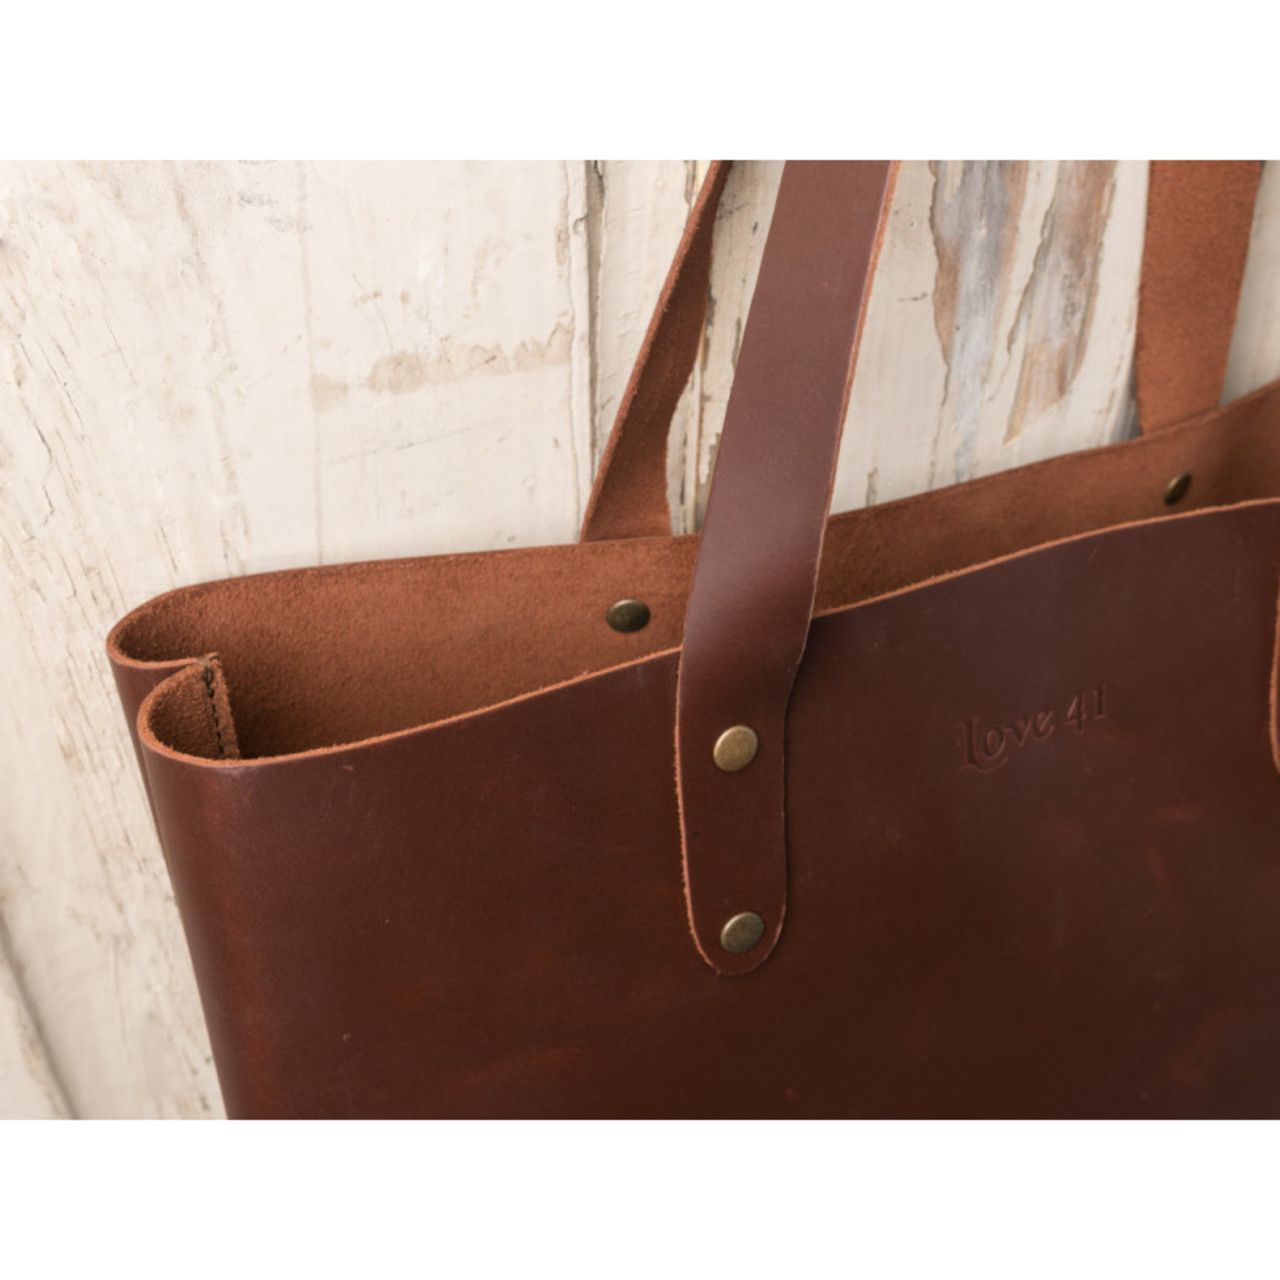 Simple Tote in chestnut